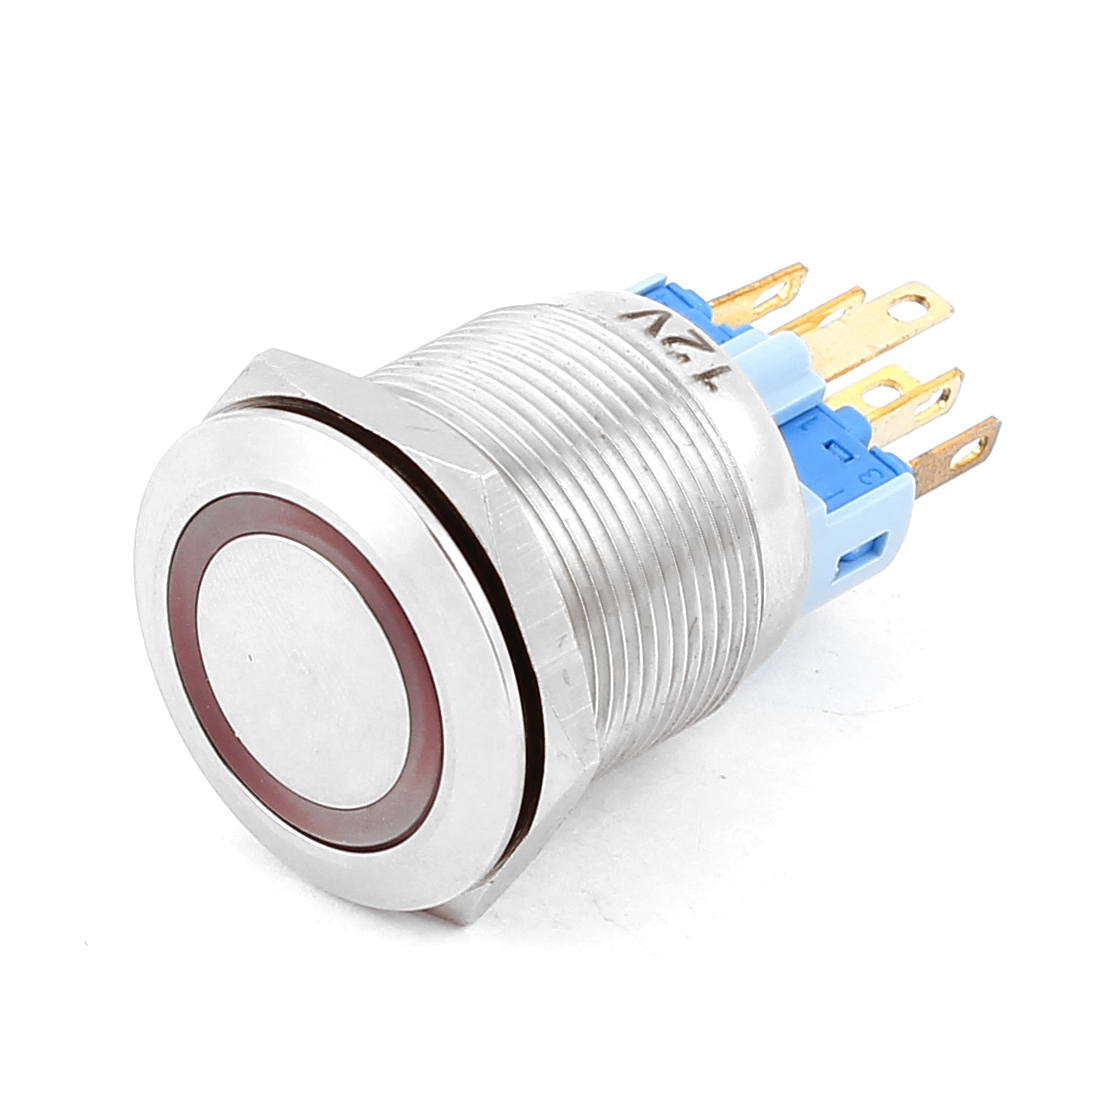 DC 12V Red LED Light 22mm Mounted Thread 6 Pins DPST NO/NC Latching Push Button Switch